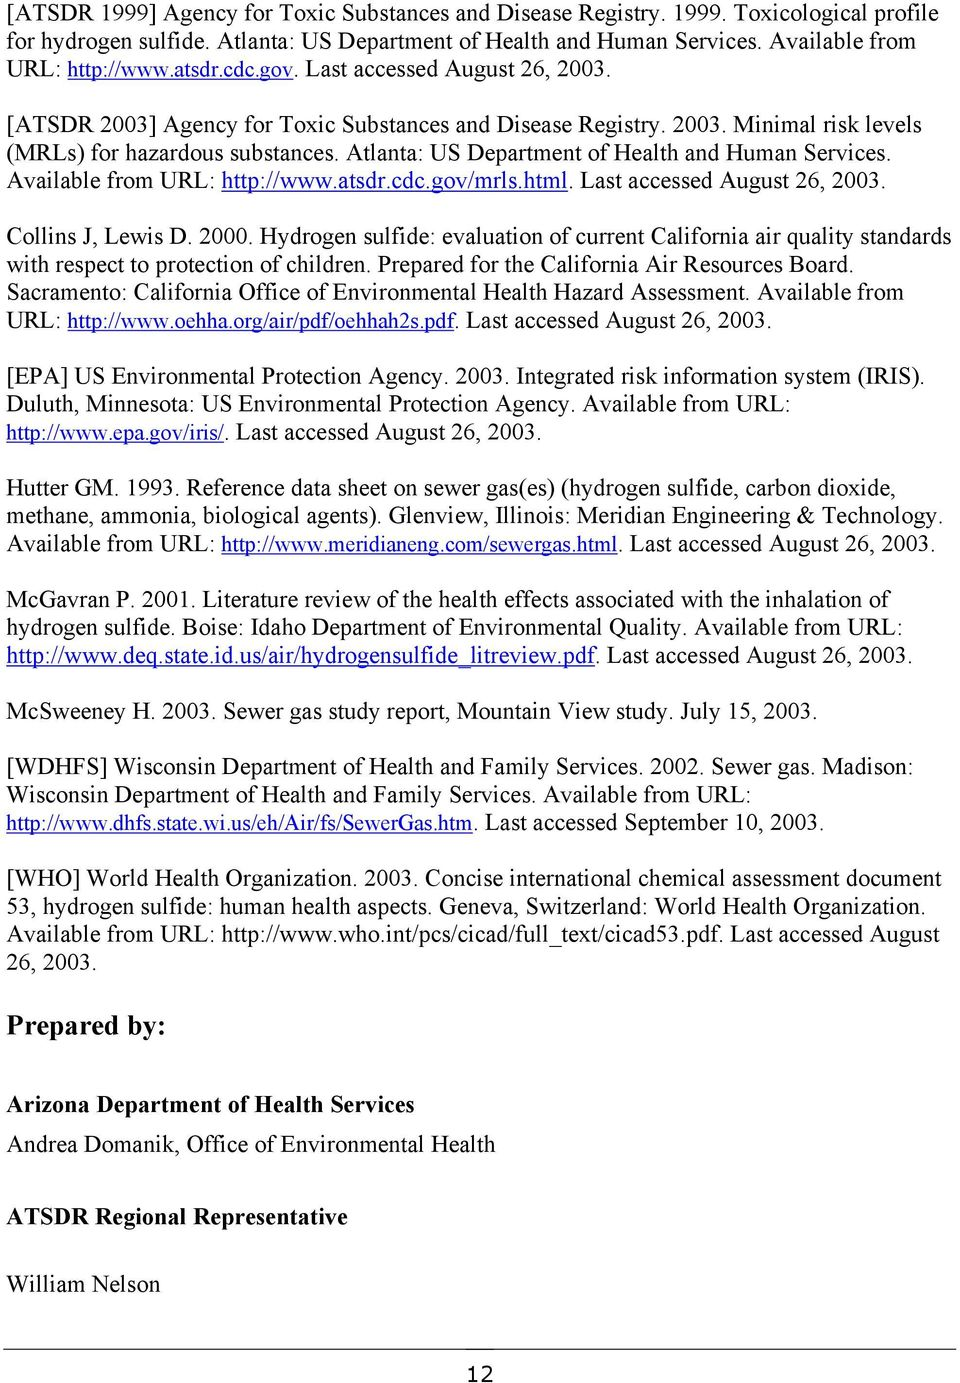 Atlanta: US Department of Health and Human Services. Available from URL: http://www.atsdr.cdc.gov/mrls.html. Last accessed August 26, 2003. Collins J, Lewis D. 2000.